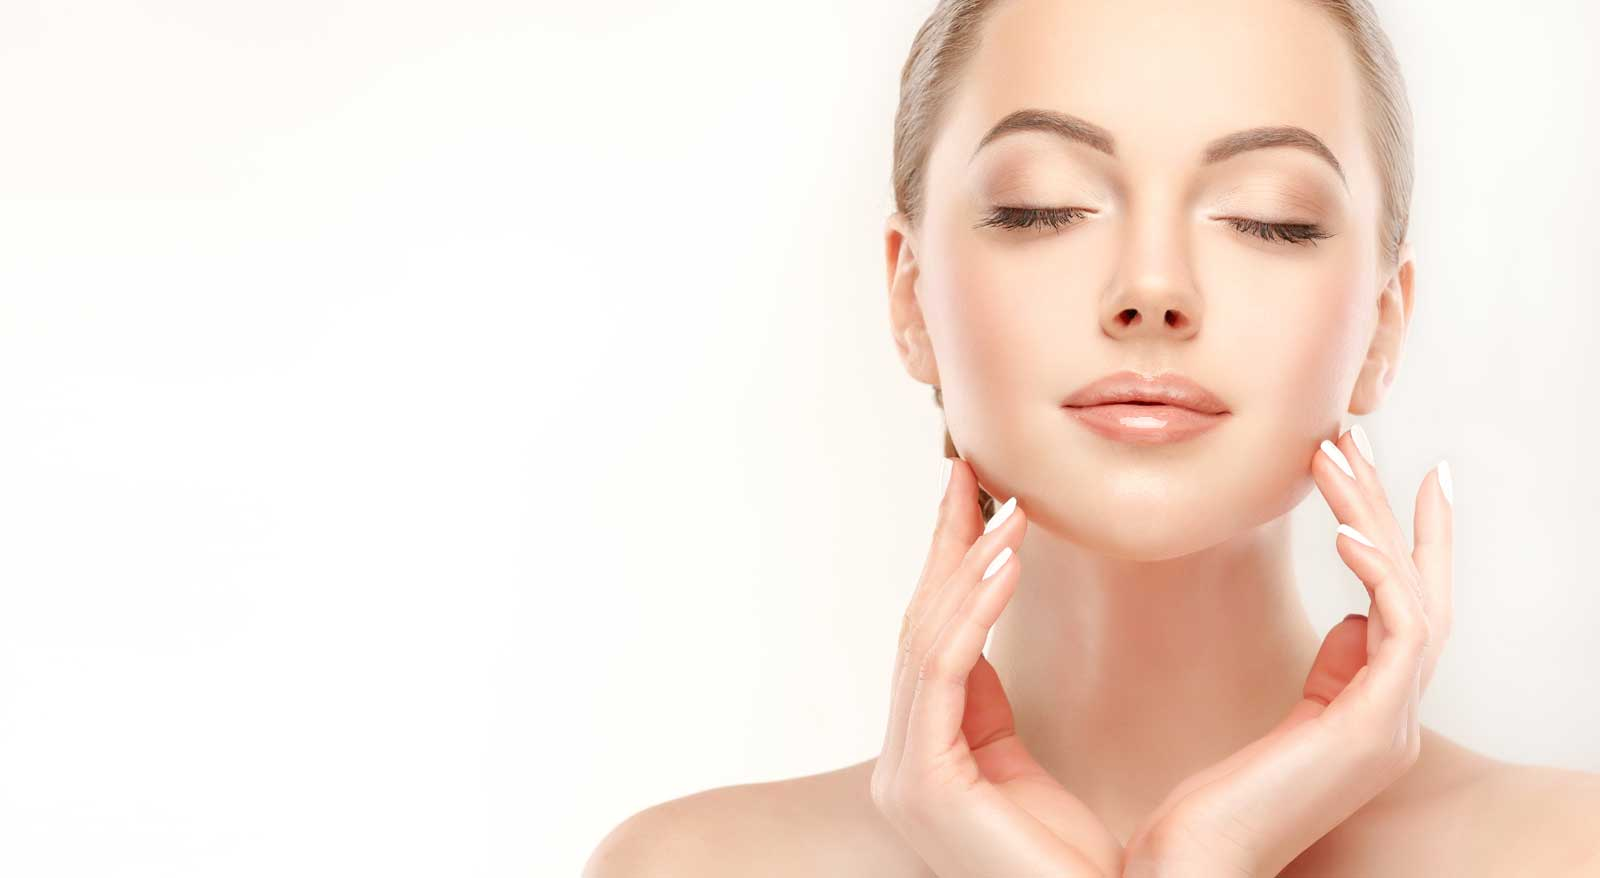 Facelogic Spa Mt. Kisco Cosmetic Facial Rejuvenation